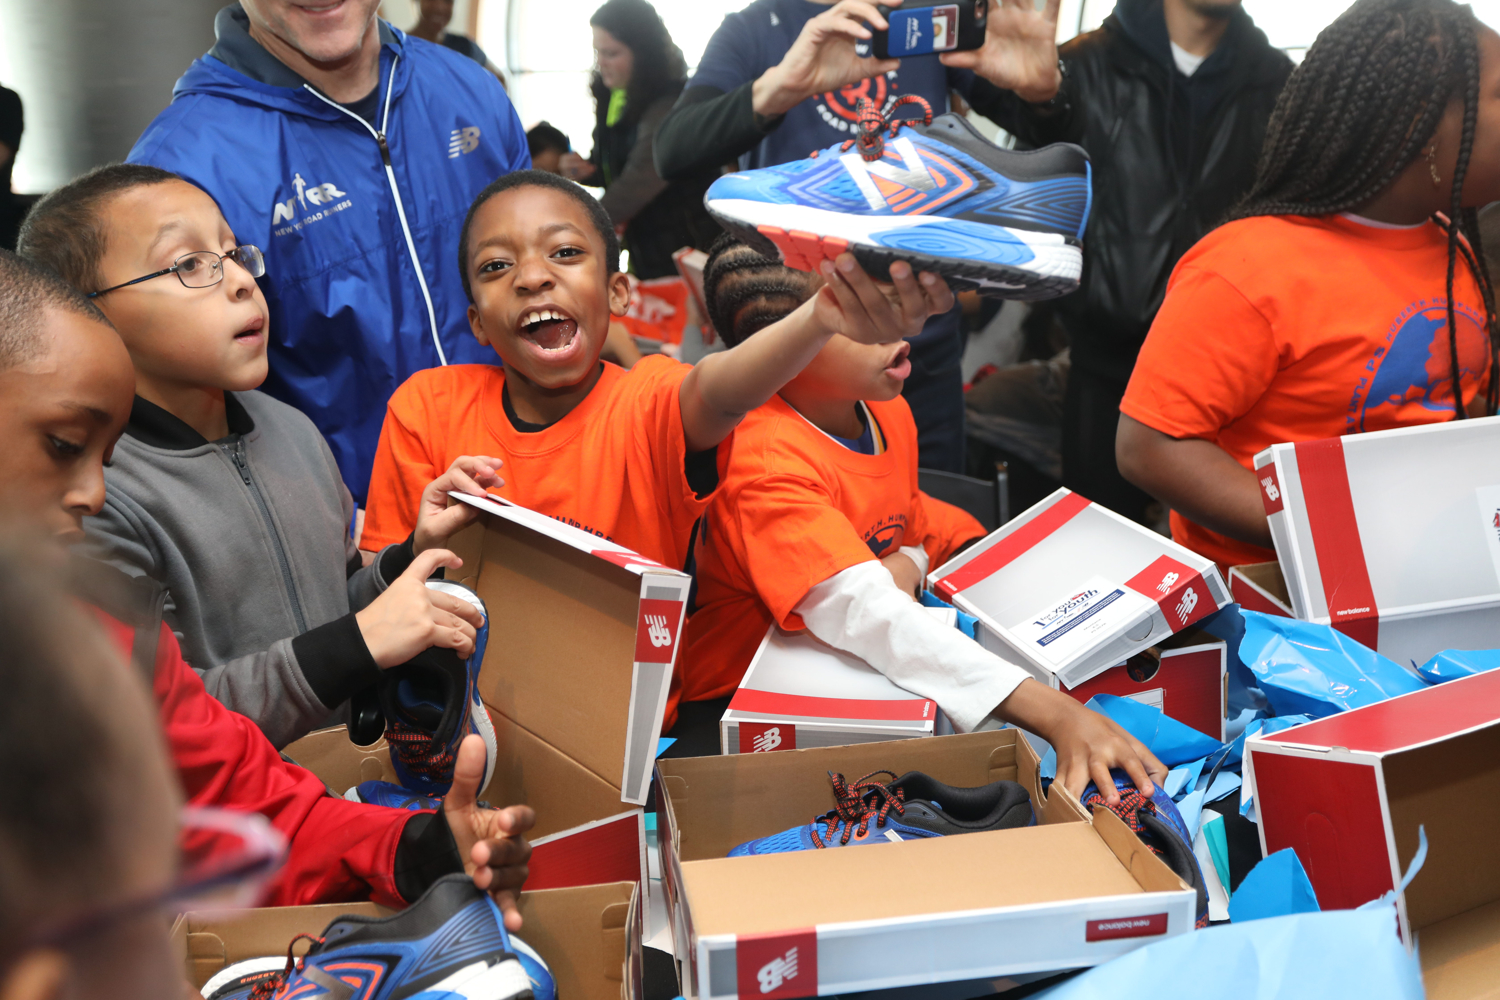 Kids receiving free shoes as part of NYRR's 1 For You 1 For Youth program